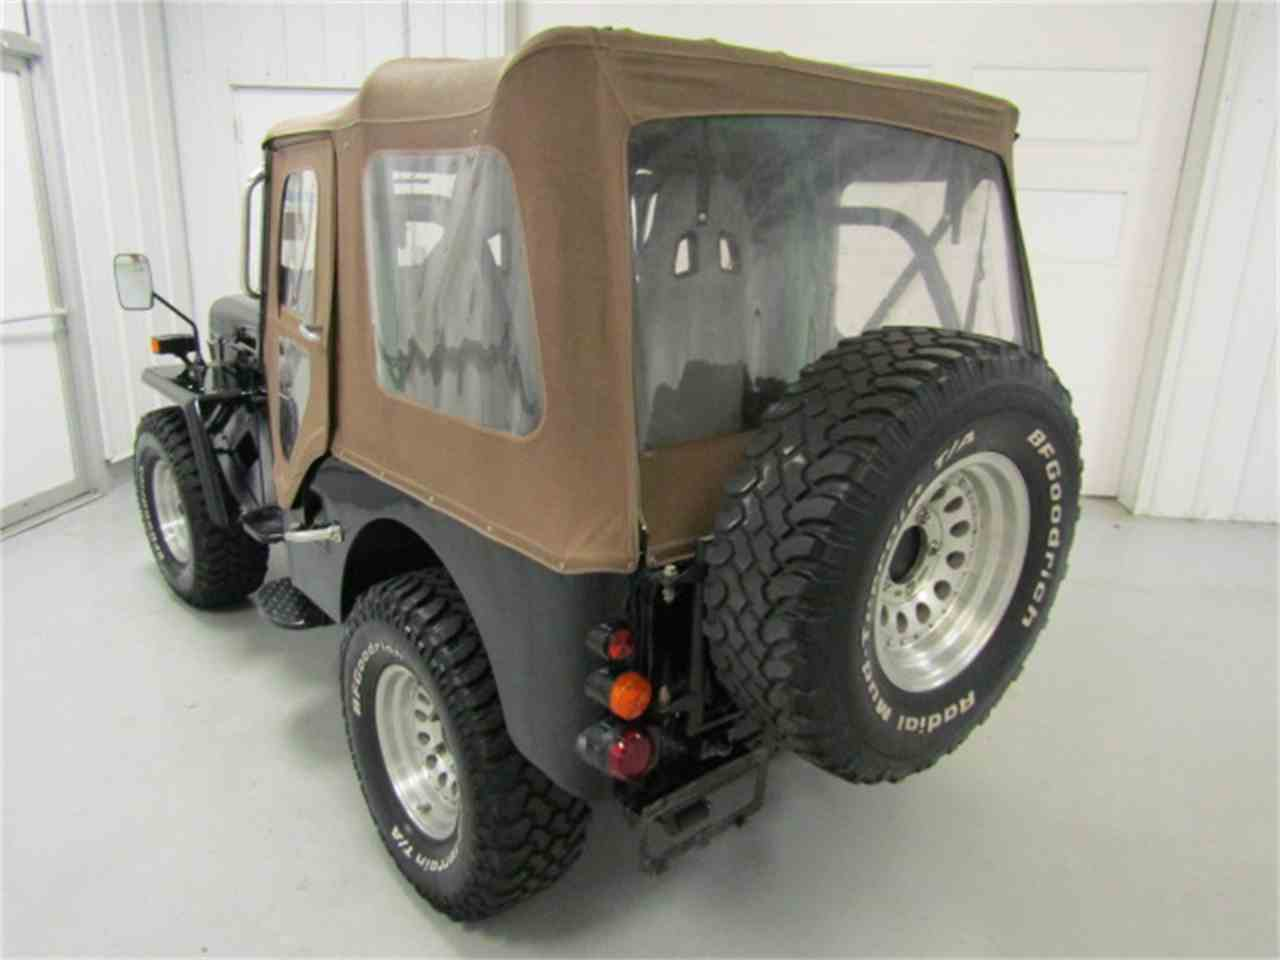 Large Picture of 1983 Jeep located in Virginia - $9,999.00 Offered by Duncan Imports & Classic Cars - JM3F